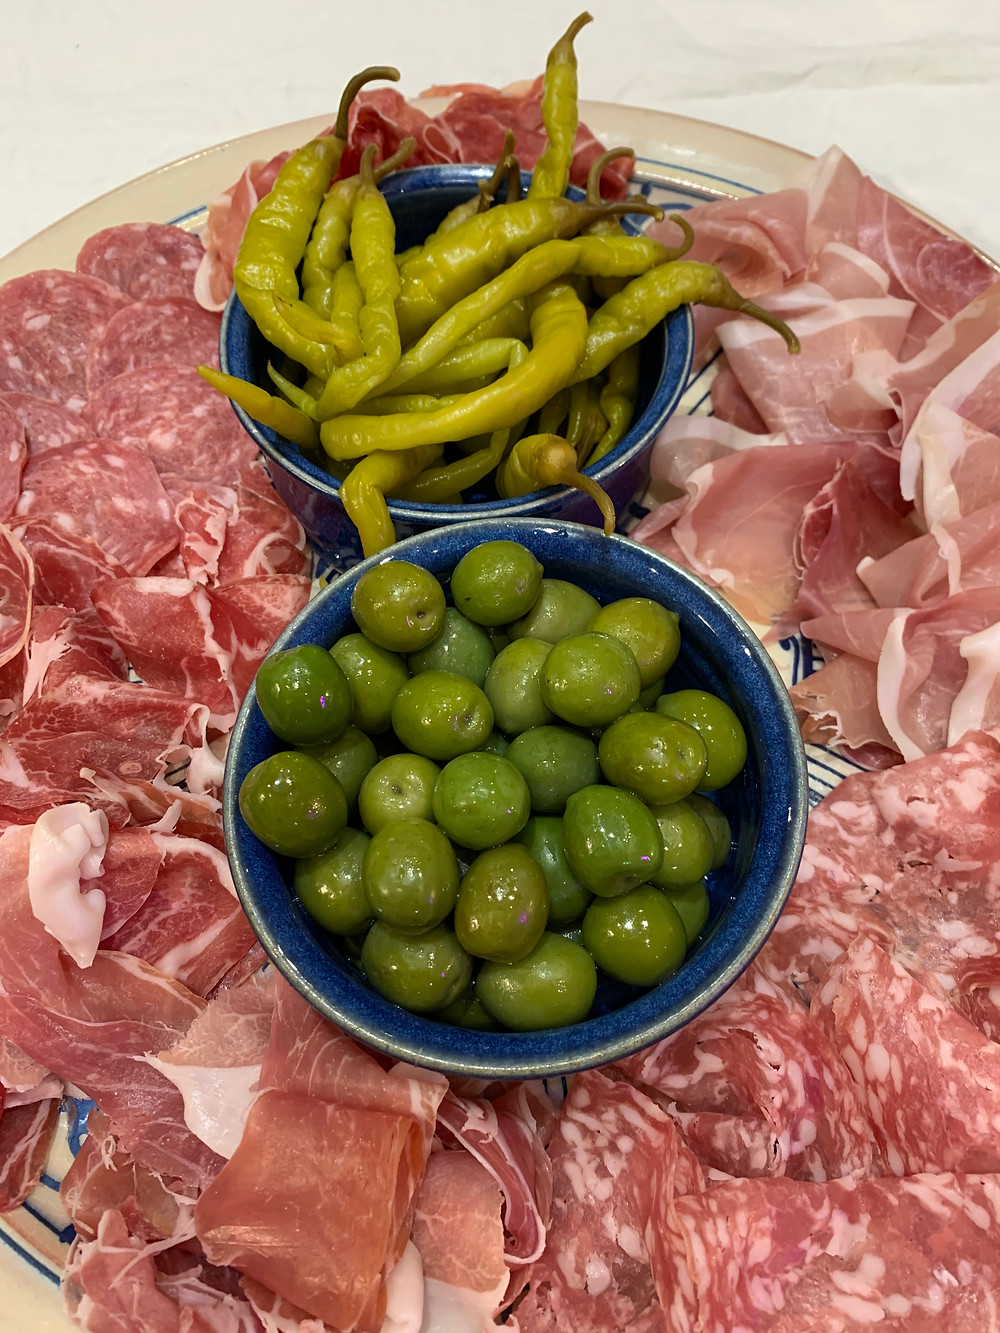 Cured meats, olives and padron peppers